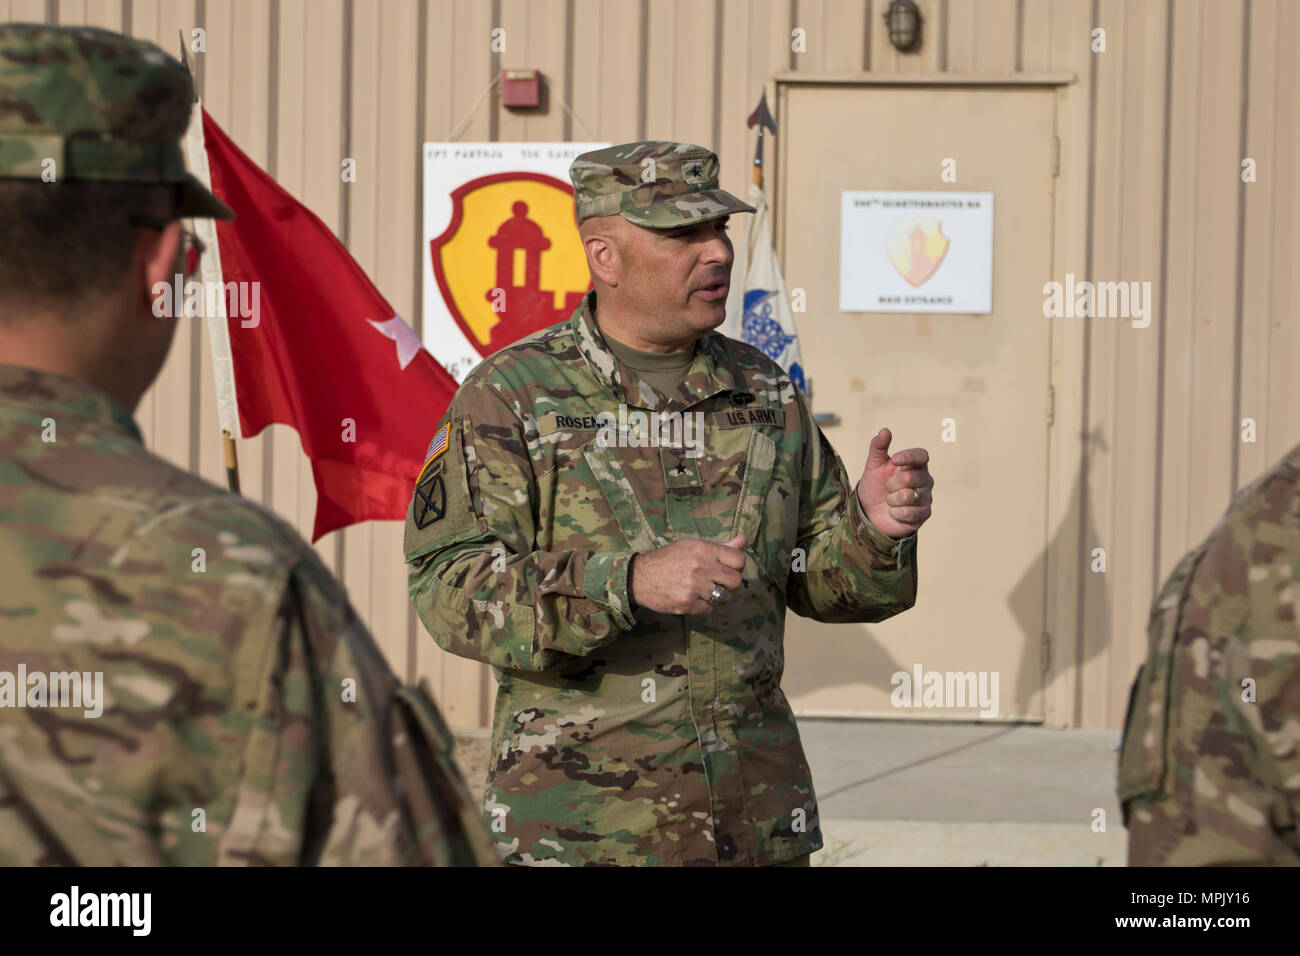 Brig. Gen. Alberto Rosende, commanding general of the 1st Mission Support Command, an Army Reserve unit based out of Fort Buchanan, Puerto Rico, talks about the importance of the combat shoulder sleeve insignia before a patching ceremony for the 246th Quartermaster Company (Mortuary Affairs) at Camp Arifjan, Kuwait, on Mar. 20, 2017. (U.S. Army photo by Staff Sgt. Dalton Smith) - Stock Image